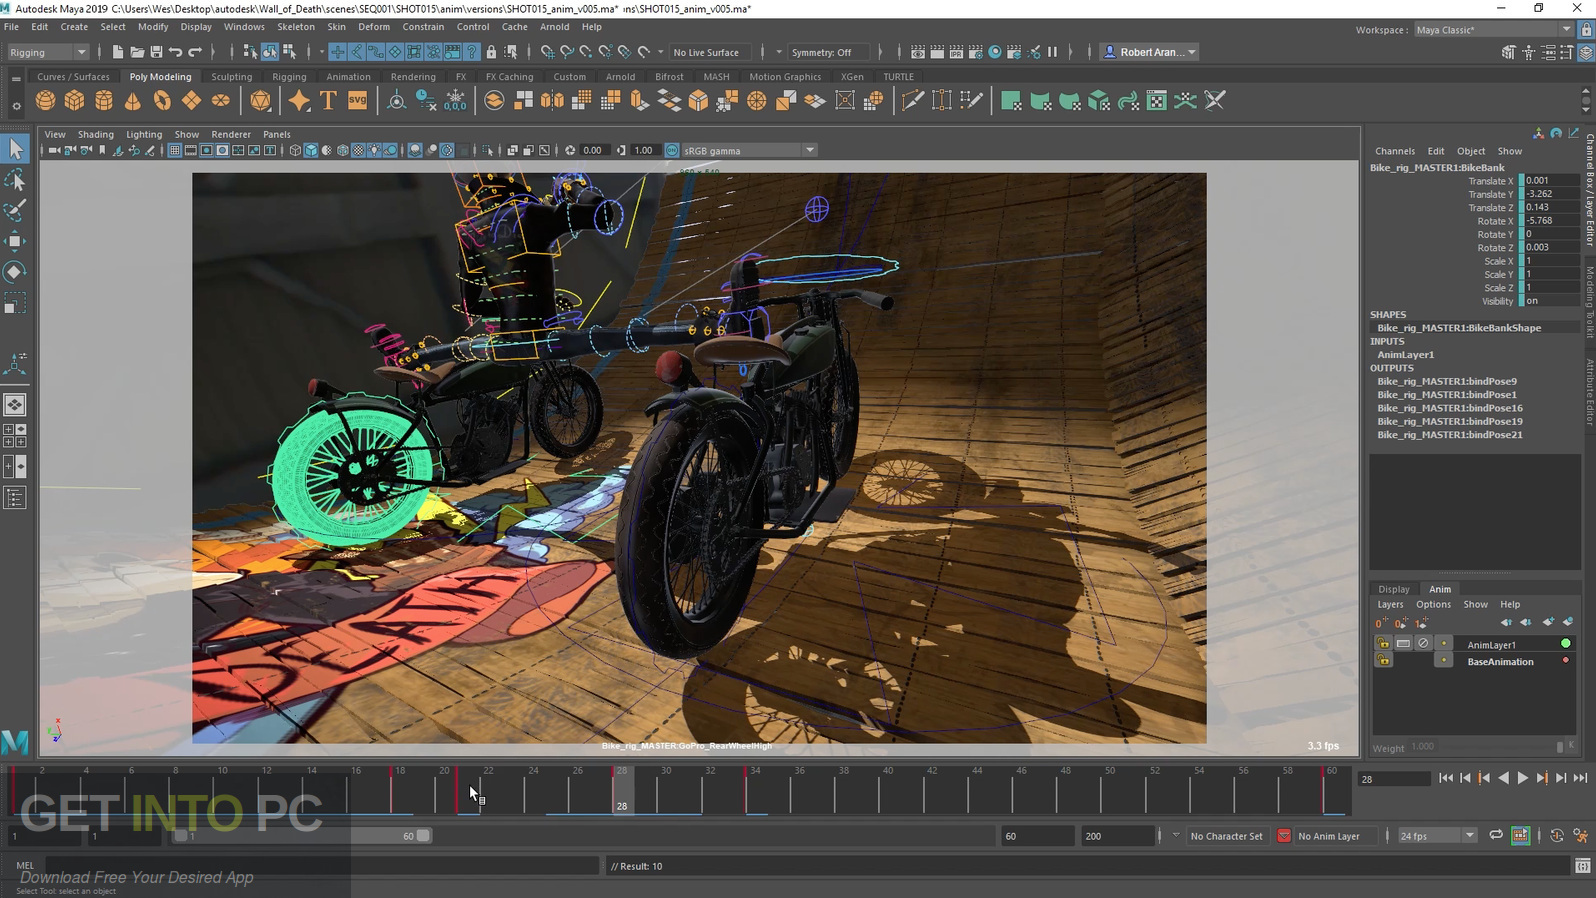 Autodesk Maya 2019 Direct Link Download-GetintoPC.com